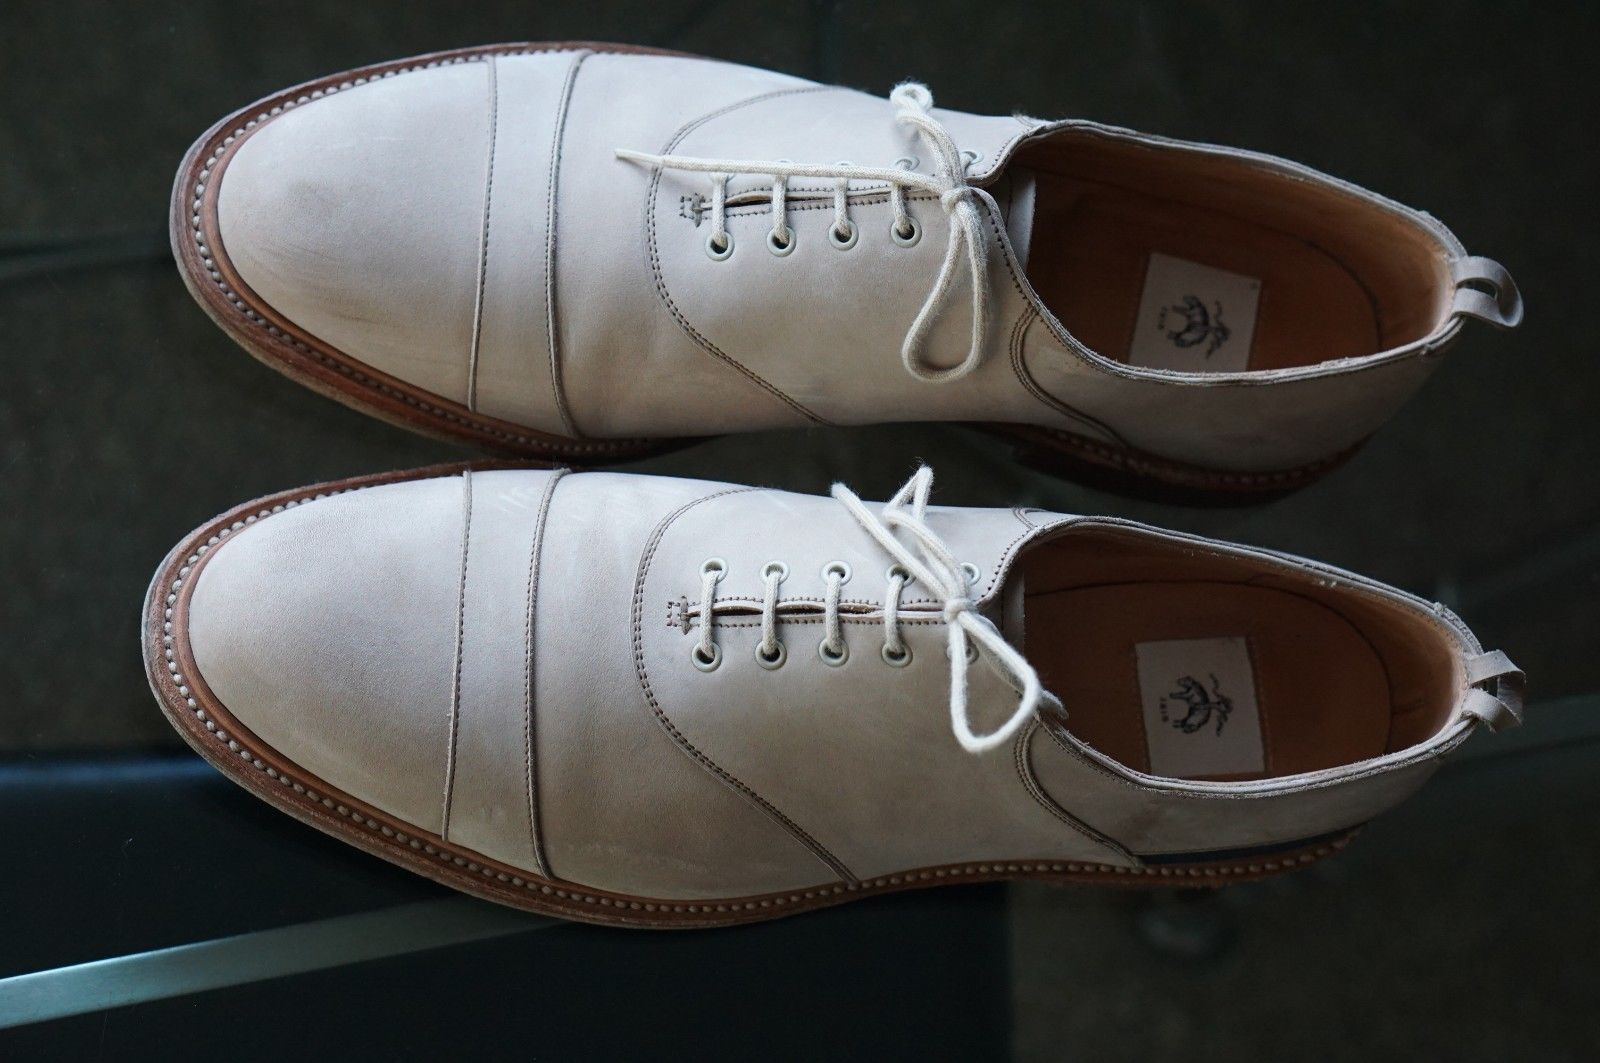 For your consideration a used pair of Crockett and Jones Captoe balmorals  for the Thom Browne designed Brooks Brothers Black Fleece line.